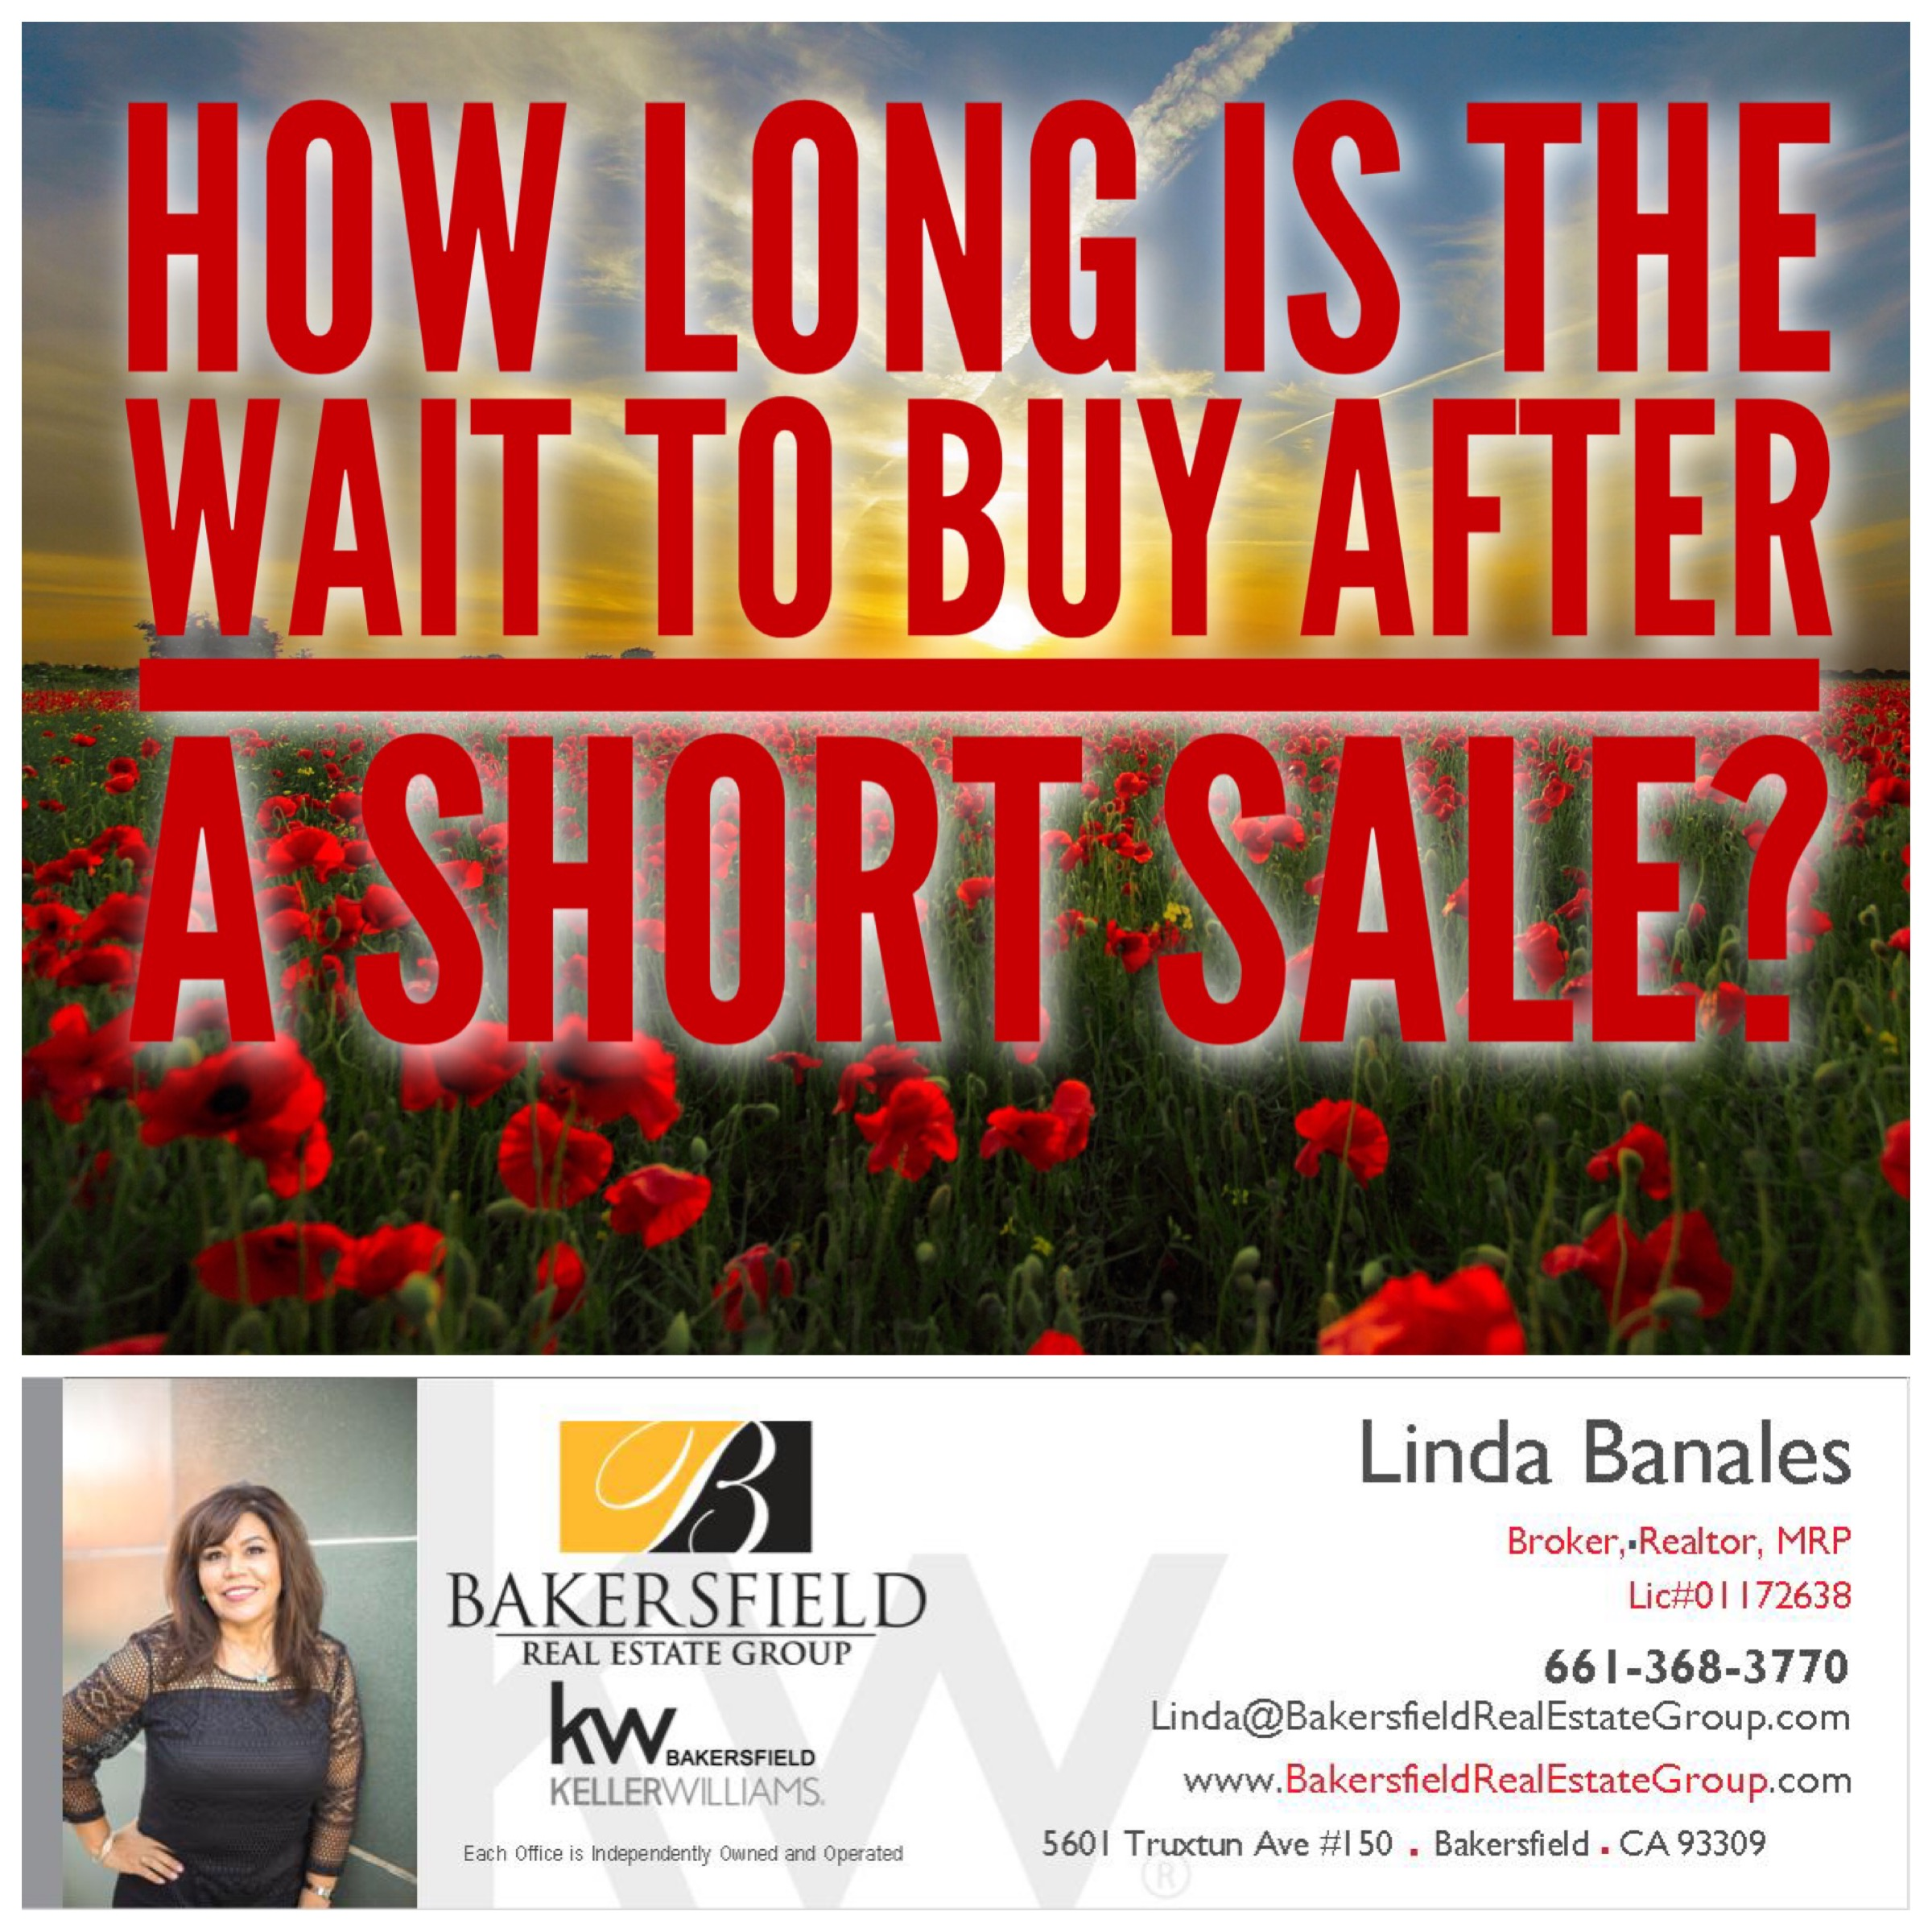 Buying a home after a Short Sale. Bakersfield realtor Linda Banales 661-368.3770